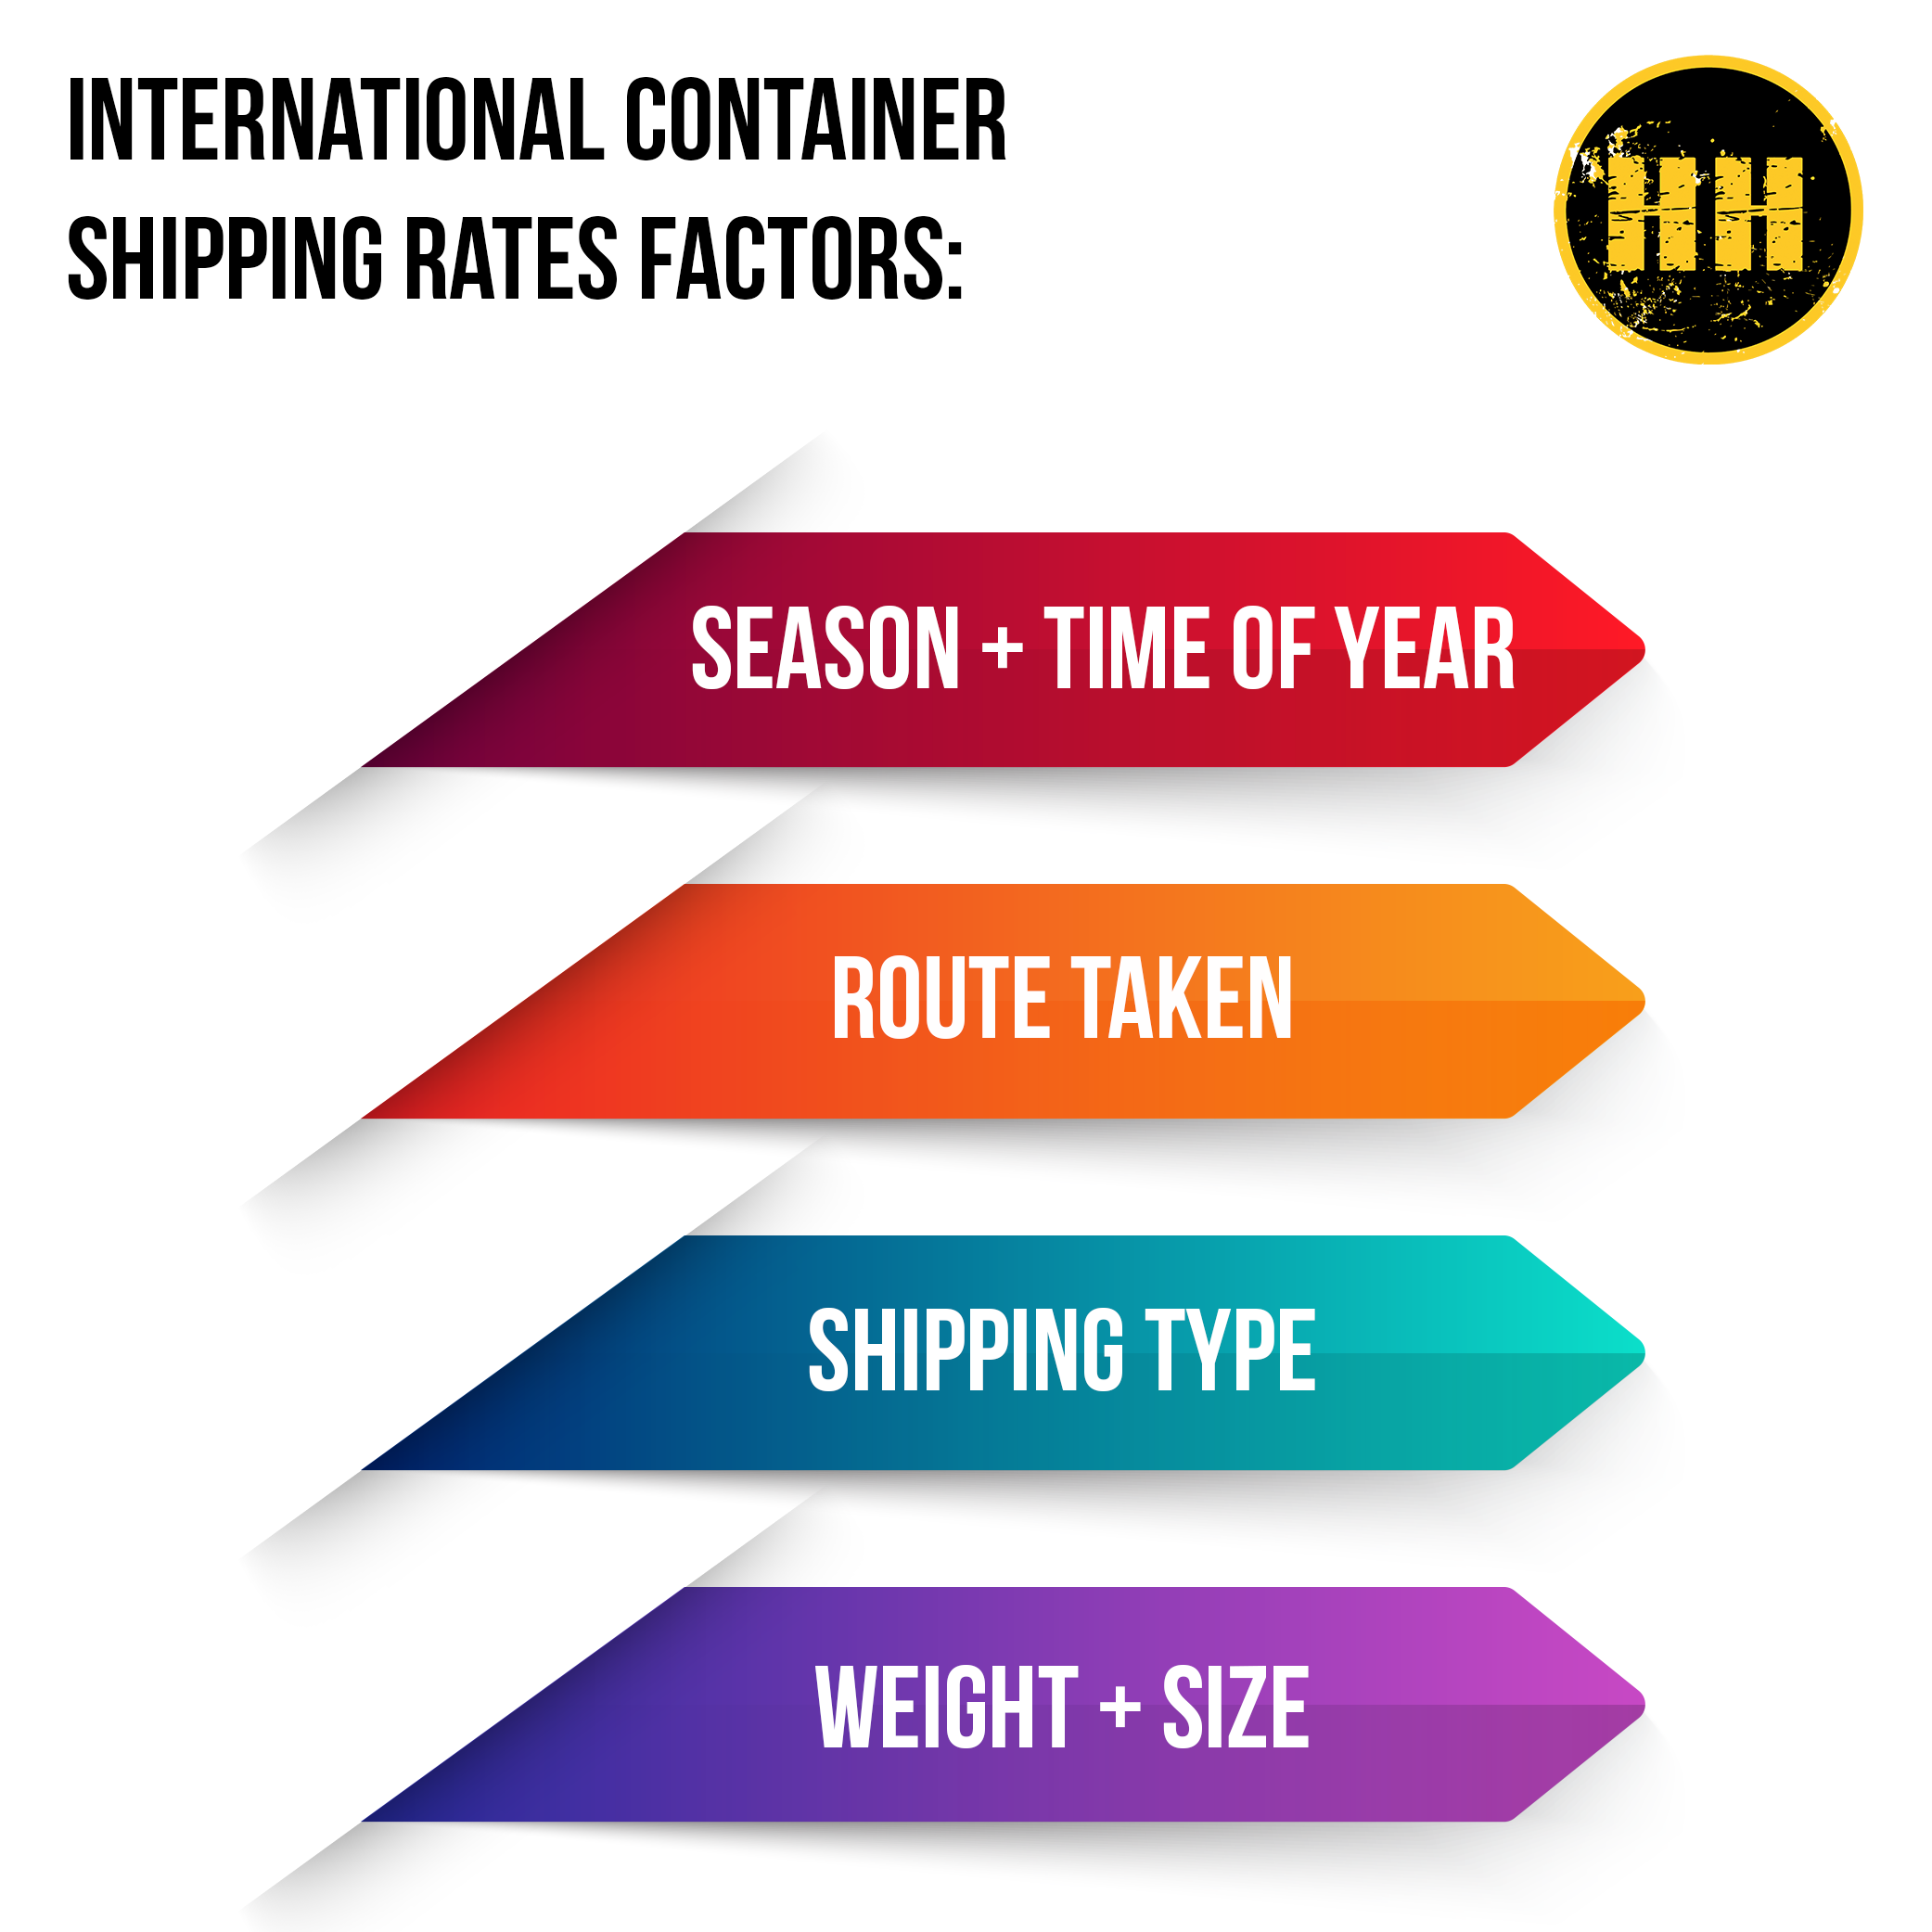 Container shipping rates factors infographic